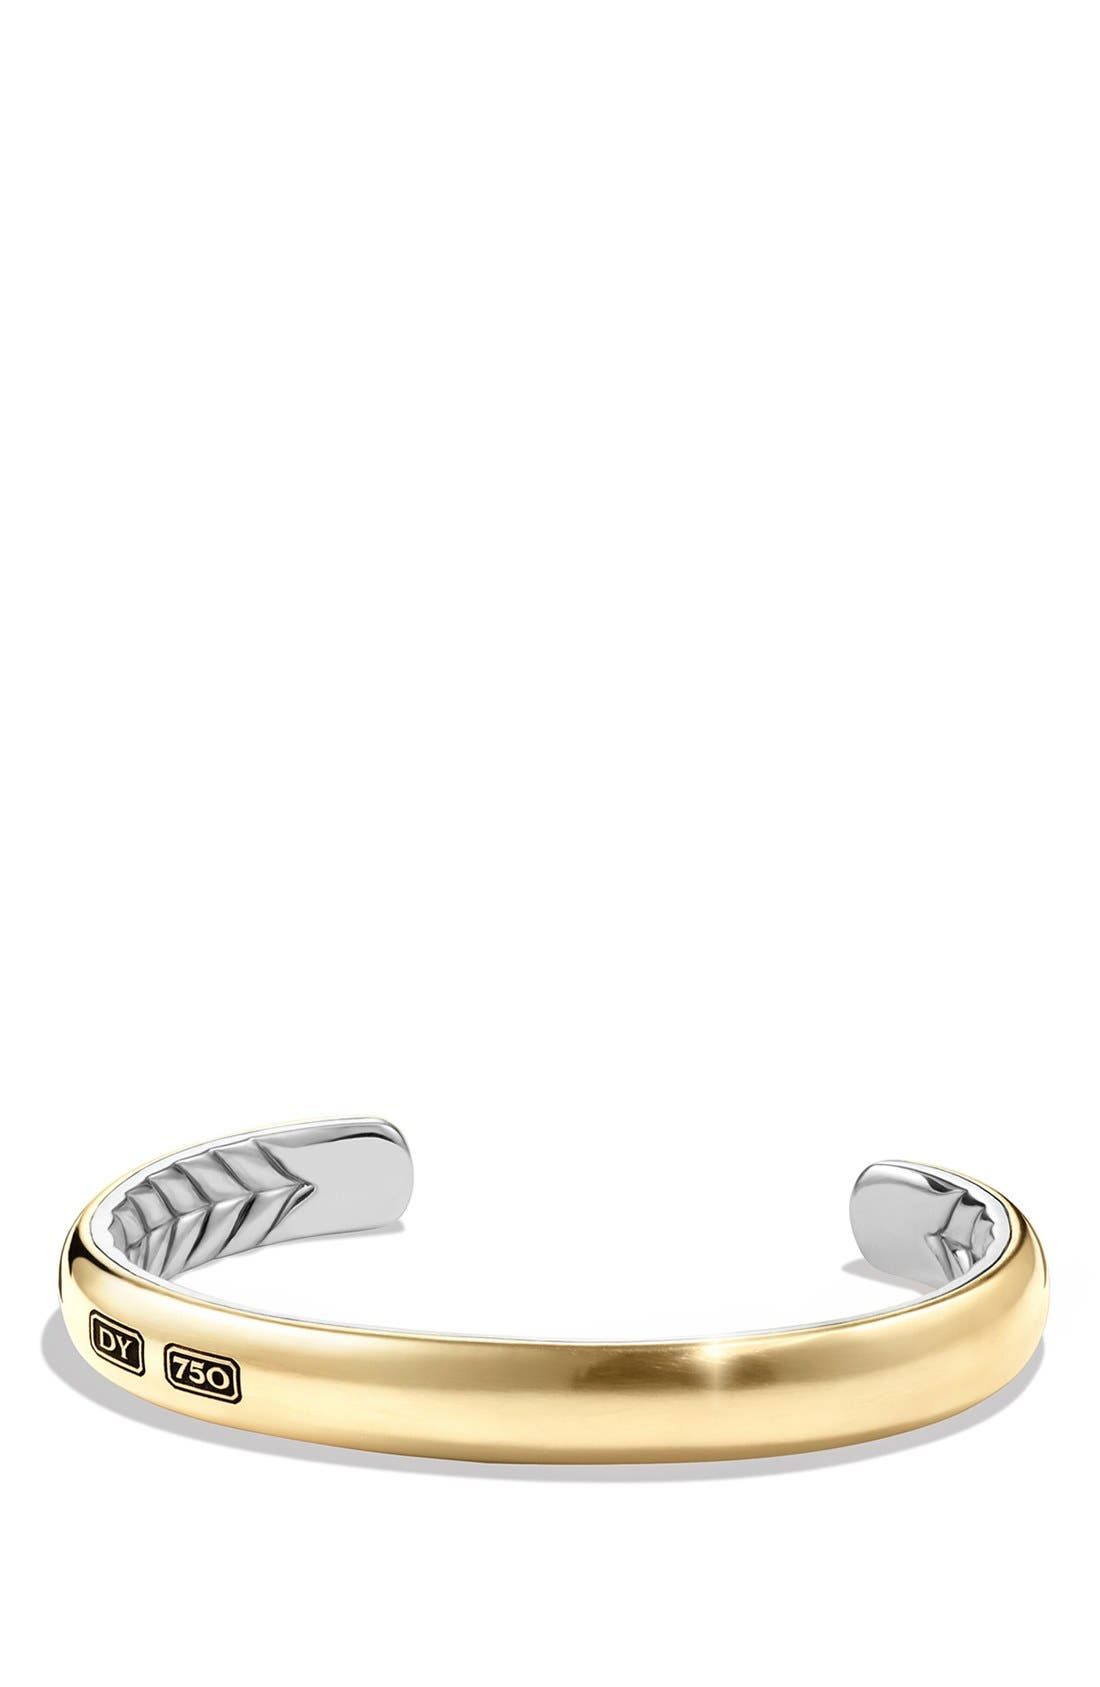 'Streamline' Cuff Bracelet with 18K Gold,                         Main,                         color,